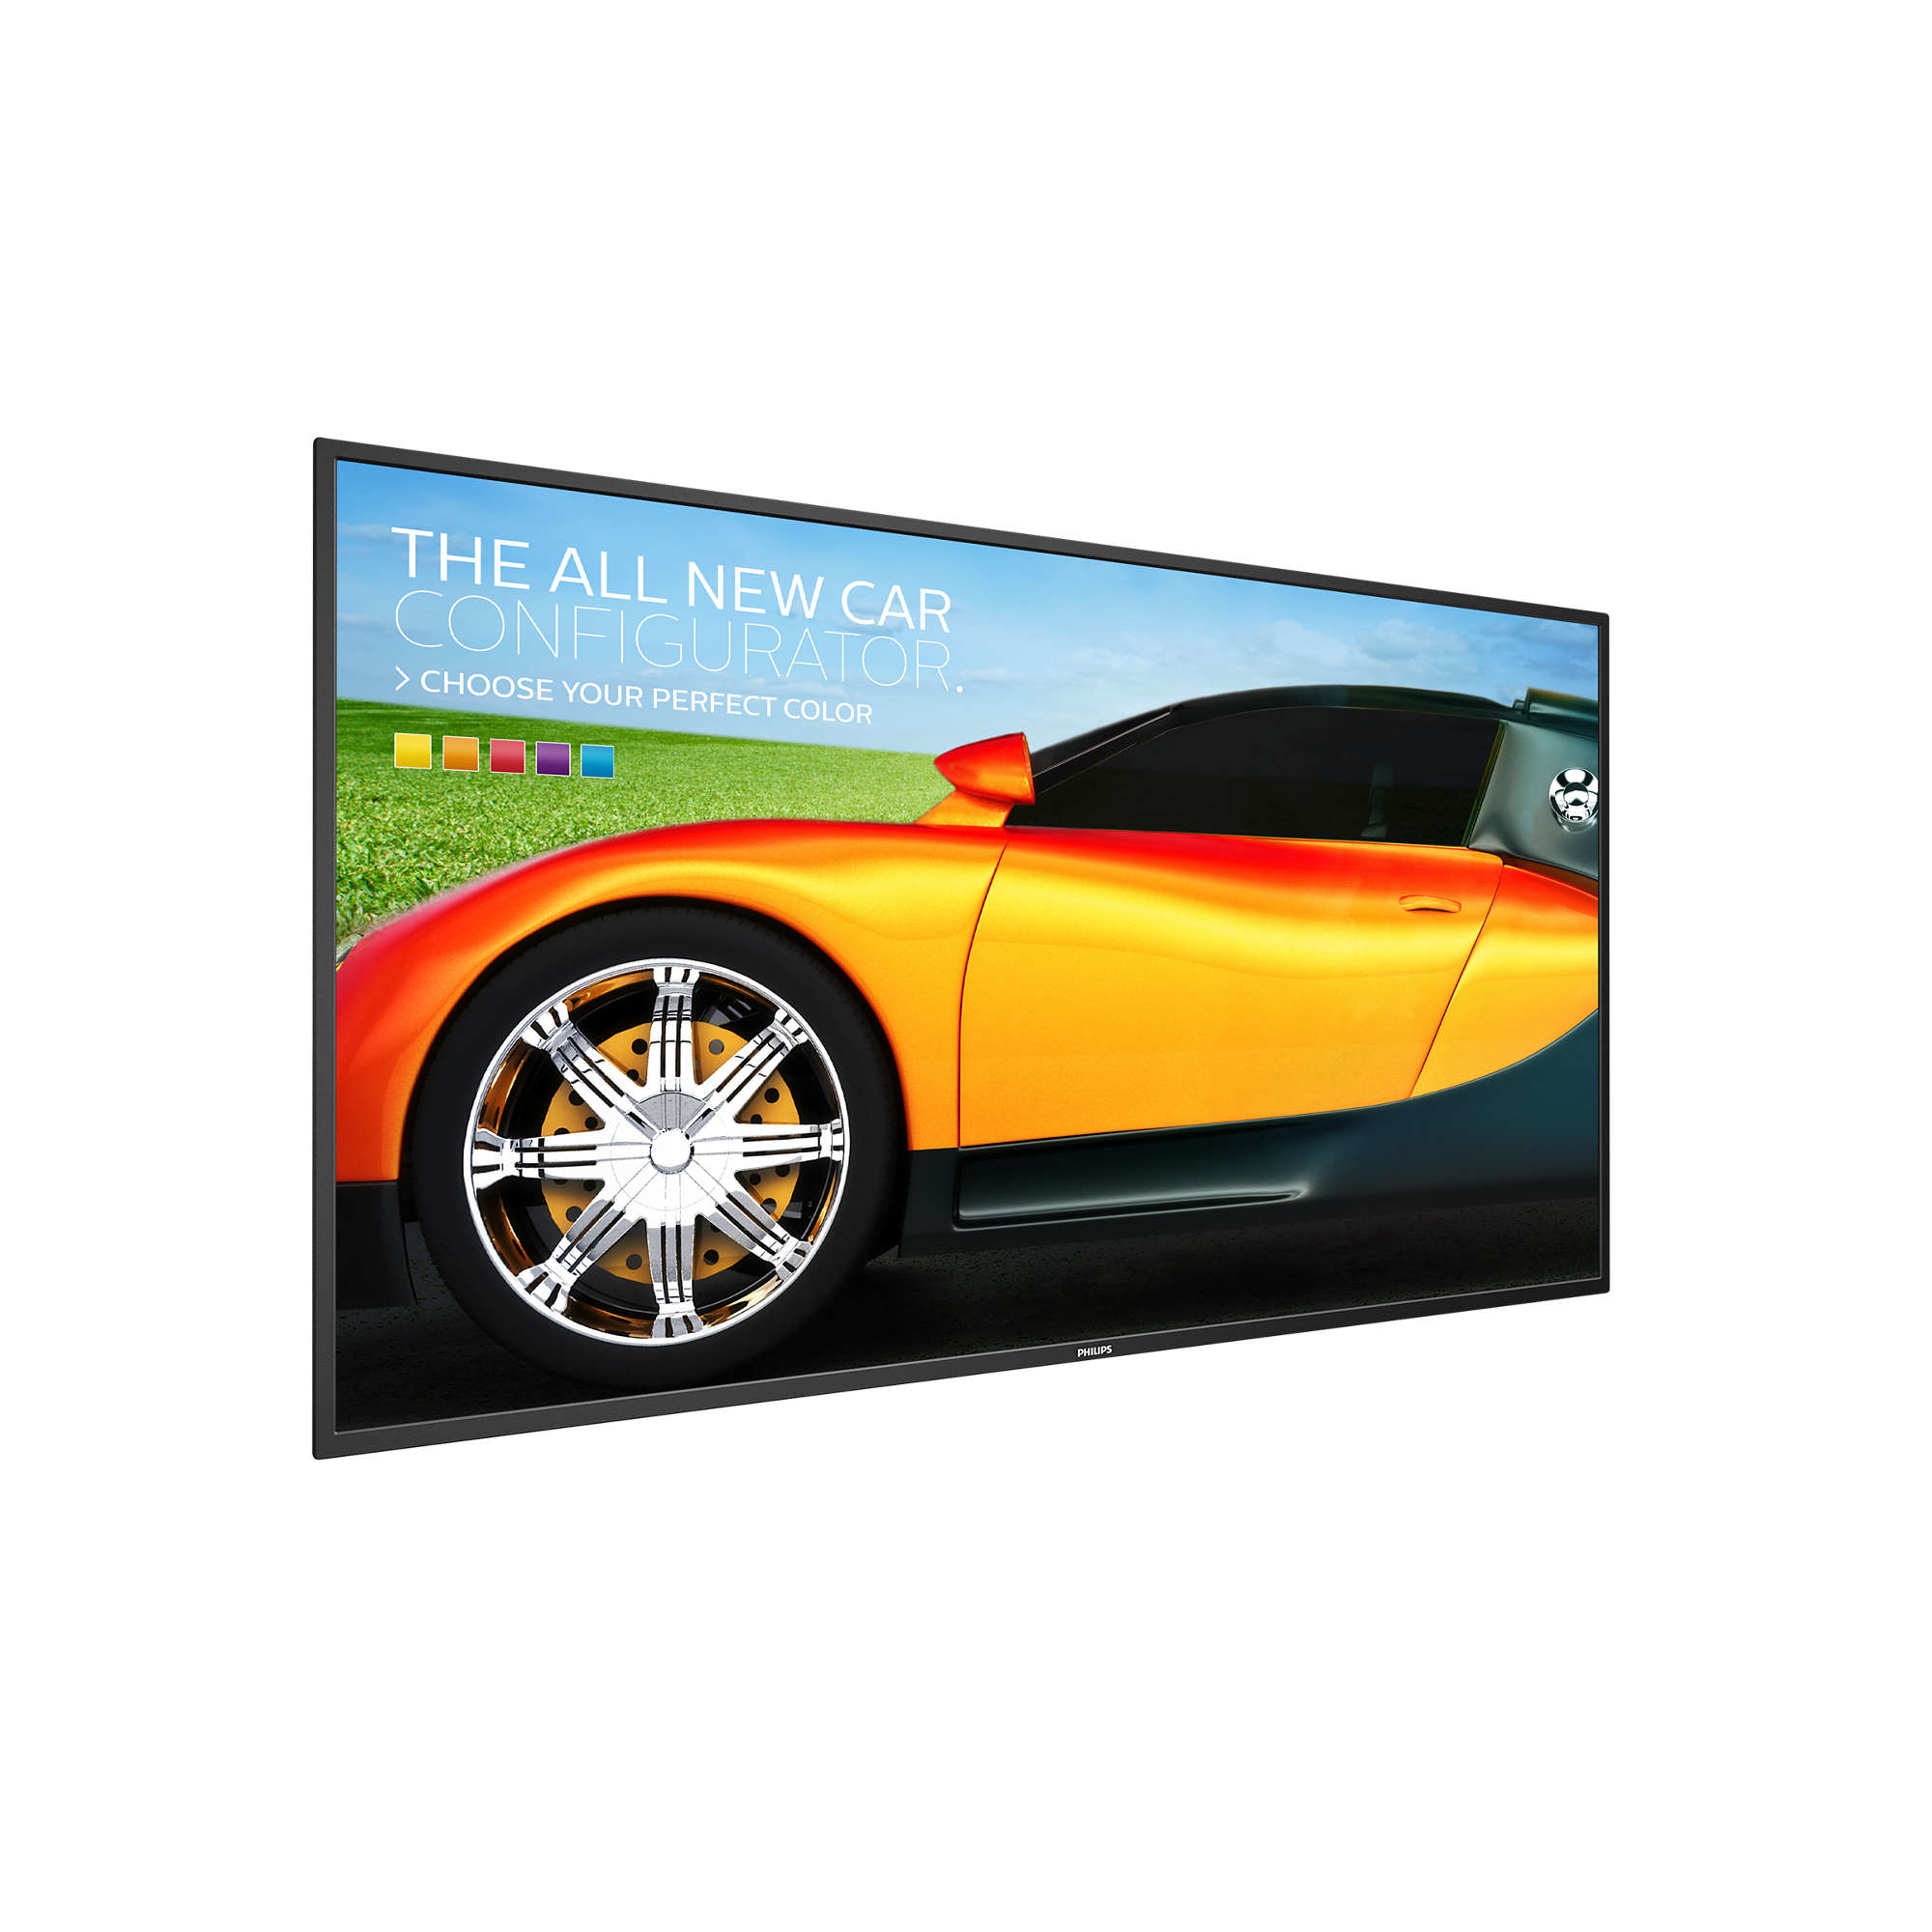 PHILIPS BDL4330QL DIGITAL SIGNAGE FLAT PANEL 42.5